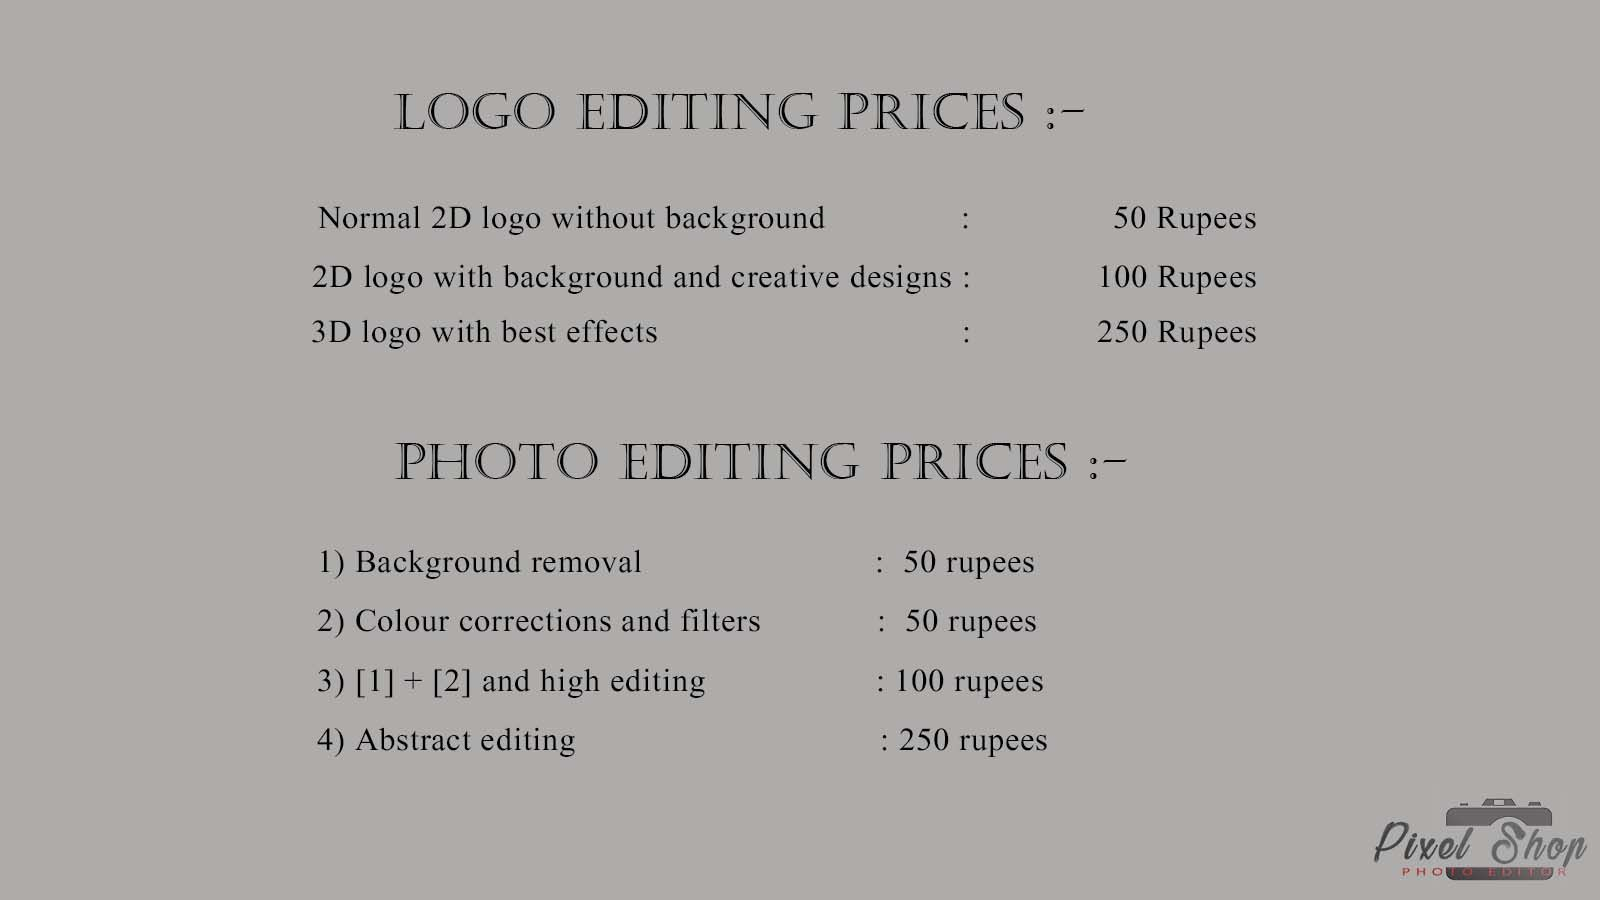 Prices For My Editing Photo Editing Edit Photo